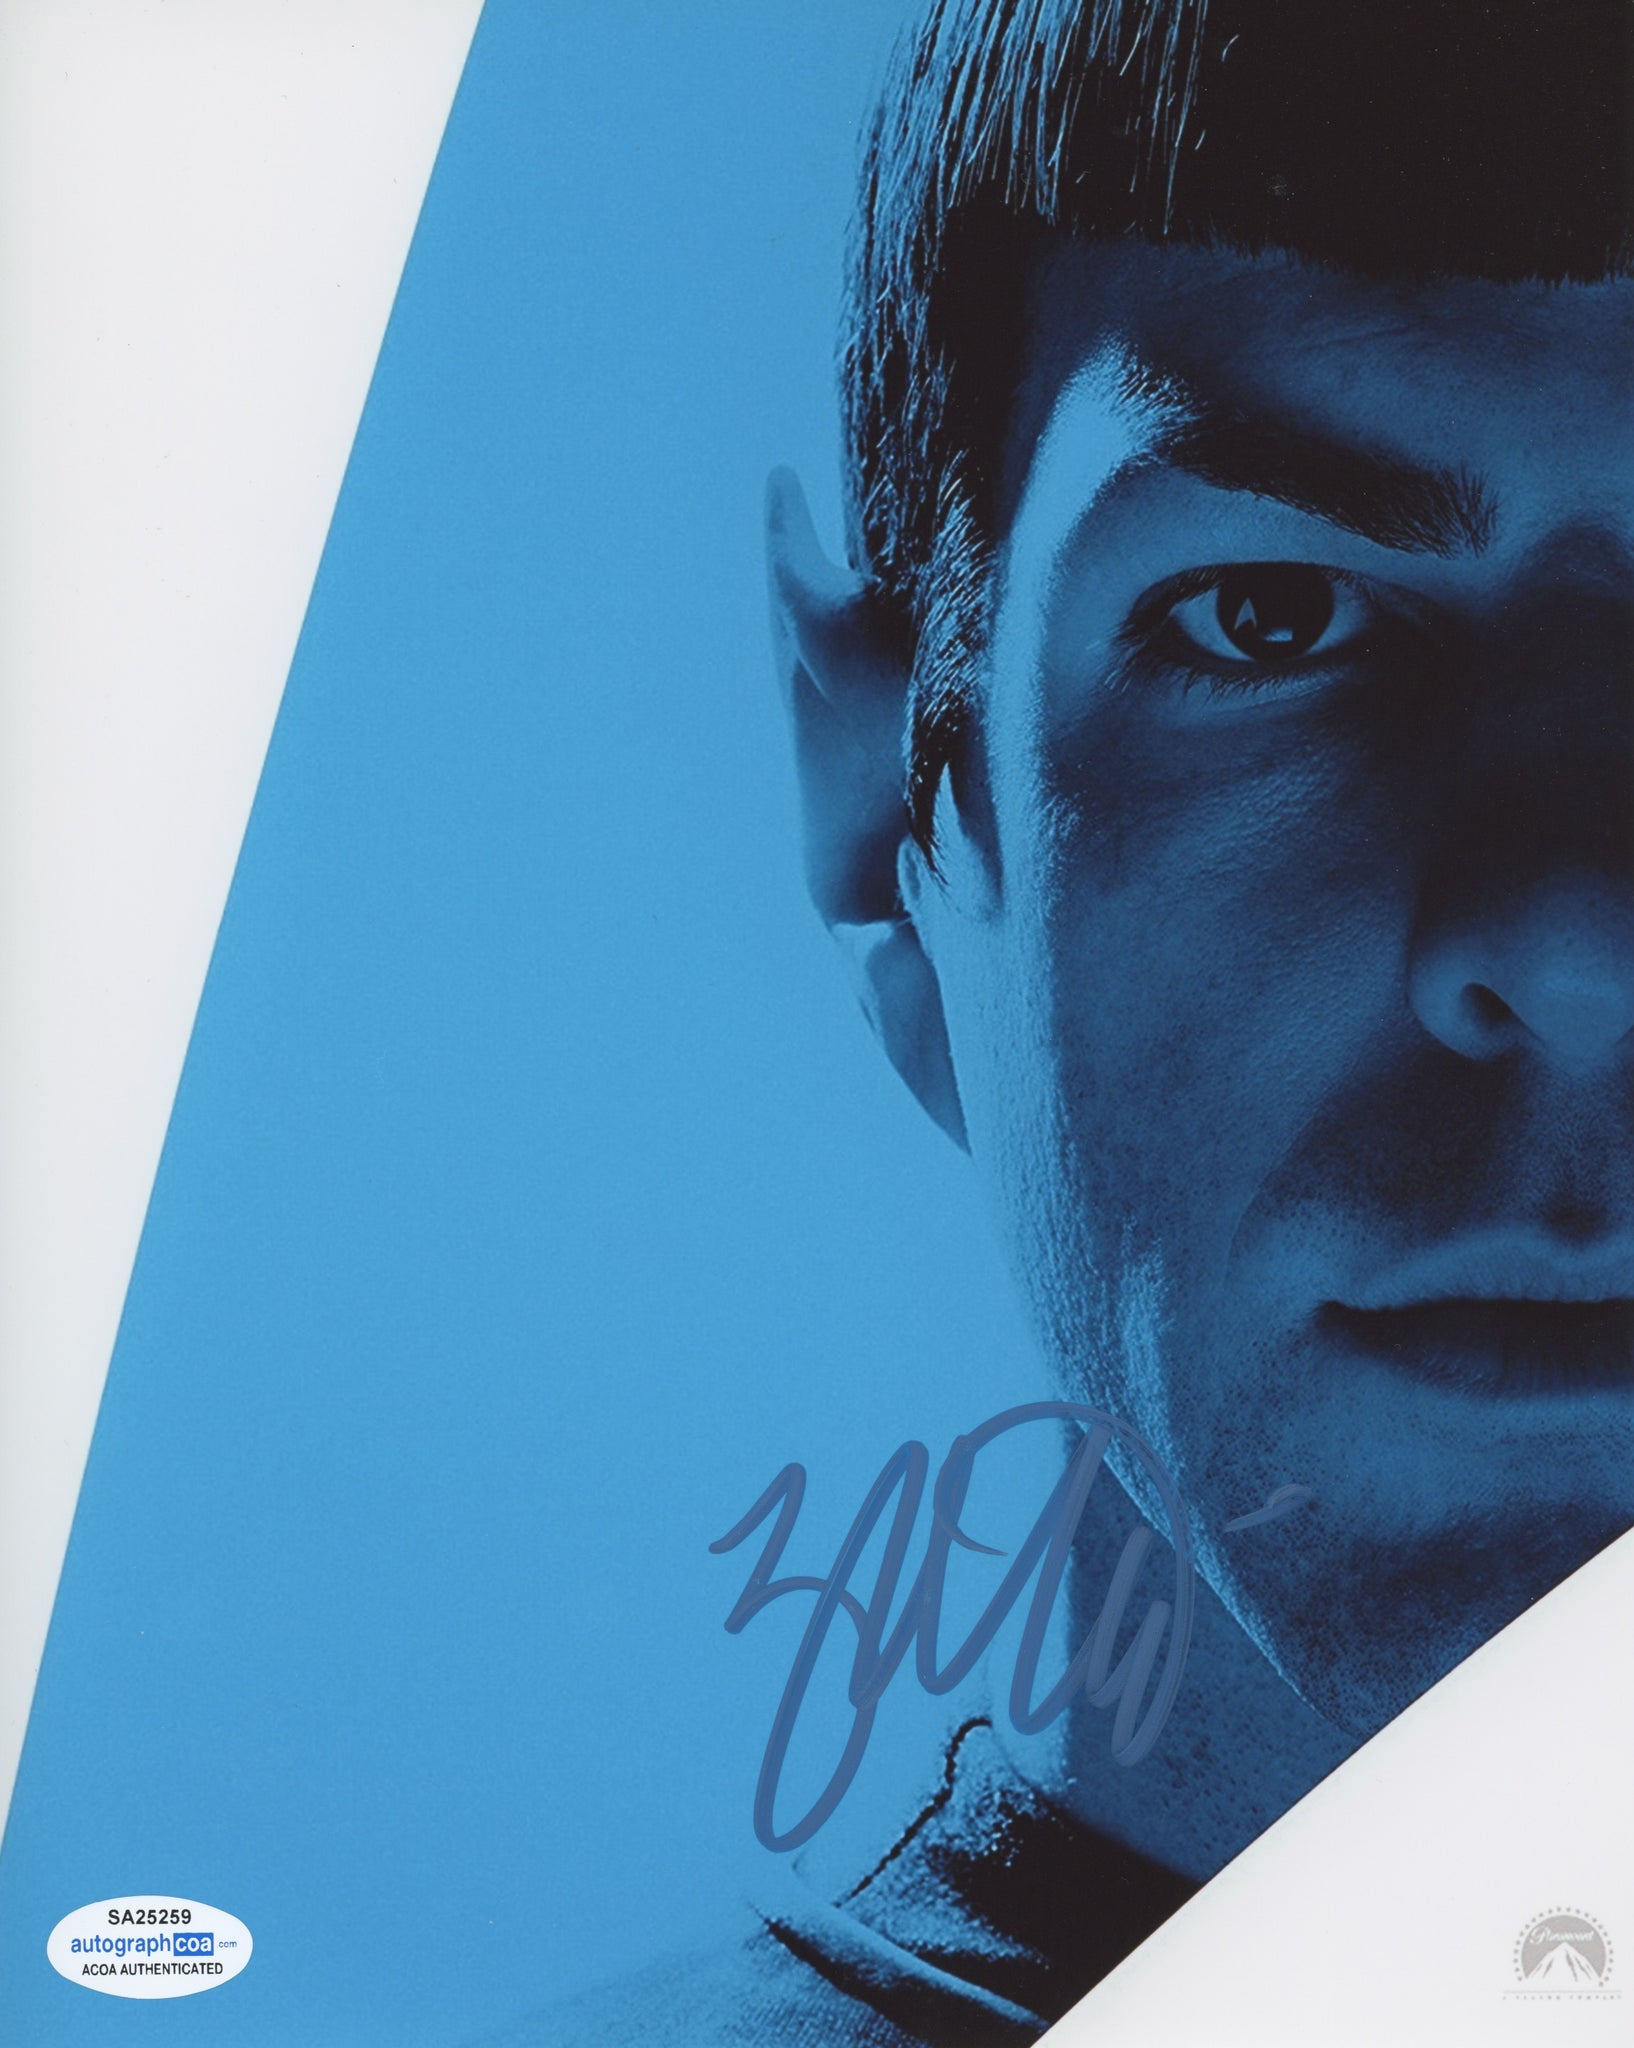 Zachary Quinto Star Trek Signed Autograph 8x10 Photo ACOA #11 - Outlaw Hobbies Authentic Autographs